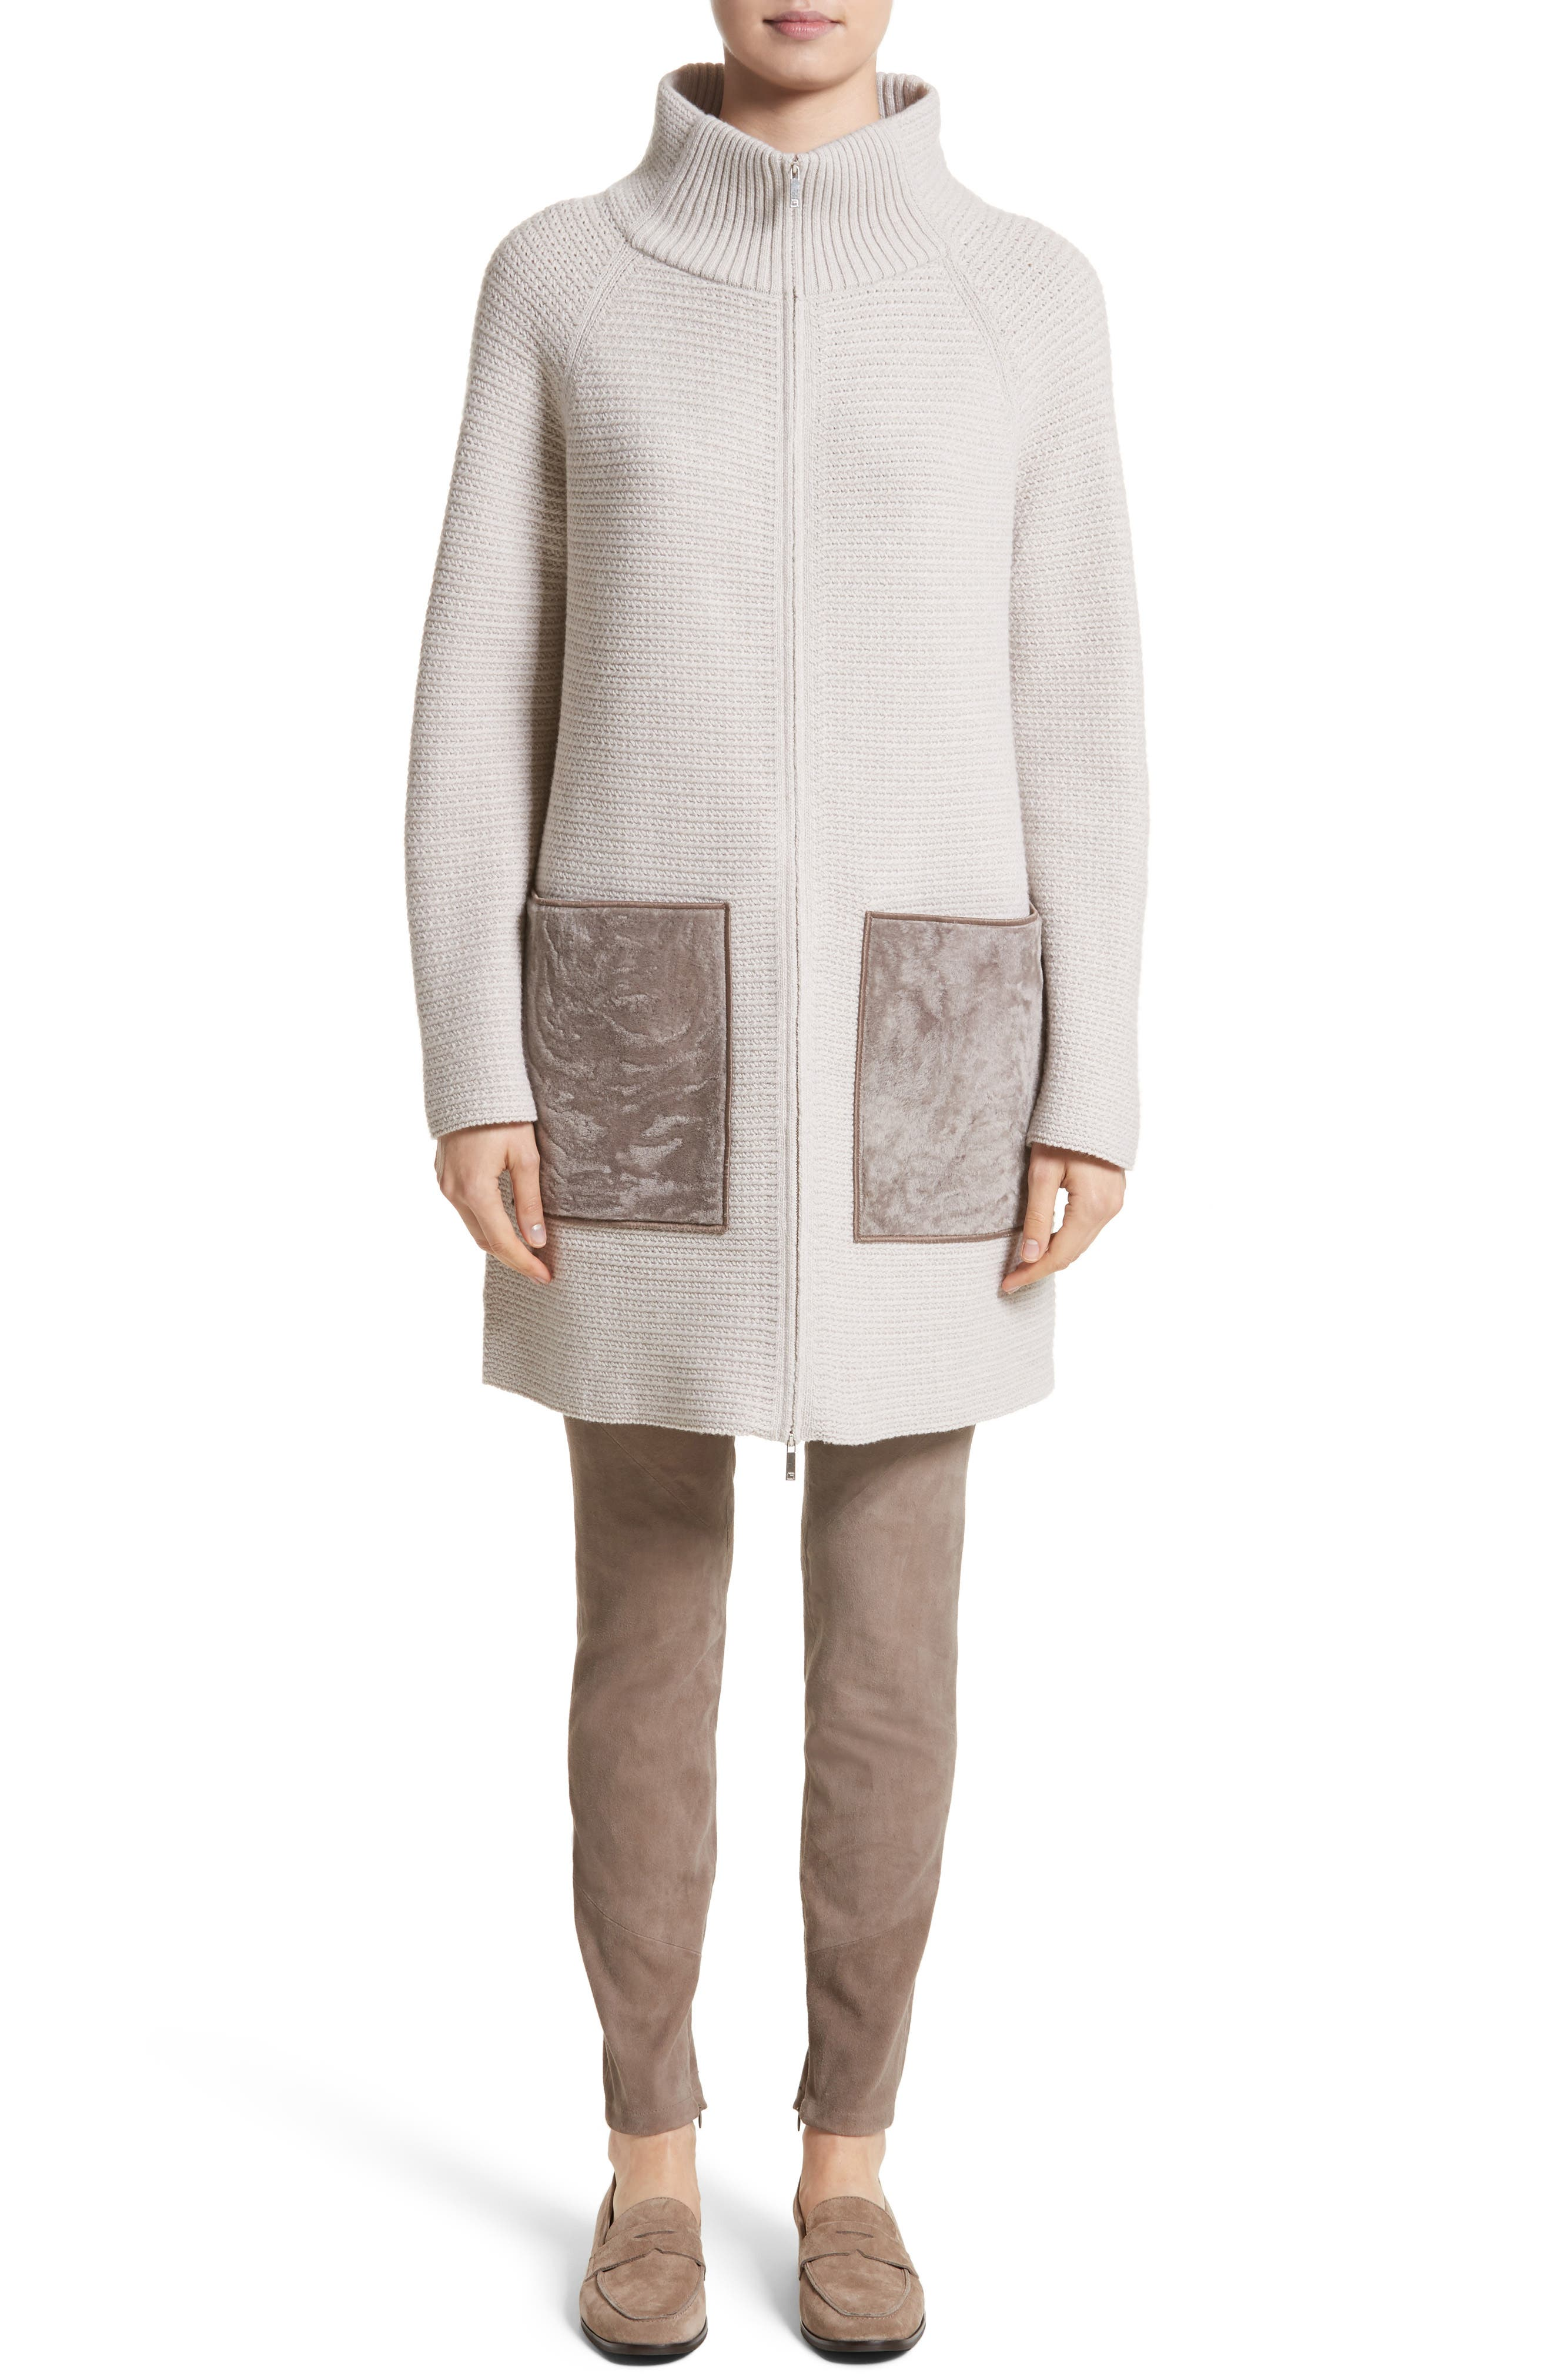 Wool & Cashmere Herringbone Stitch Cardigan with Genuine Shearling Pockets,                             Alternate thumbnail 7, color,